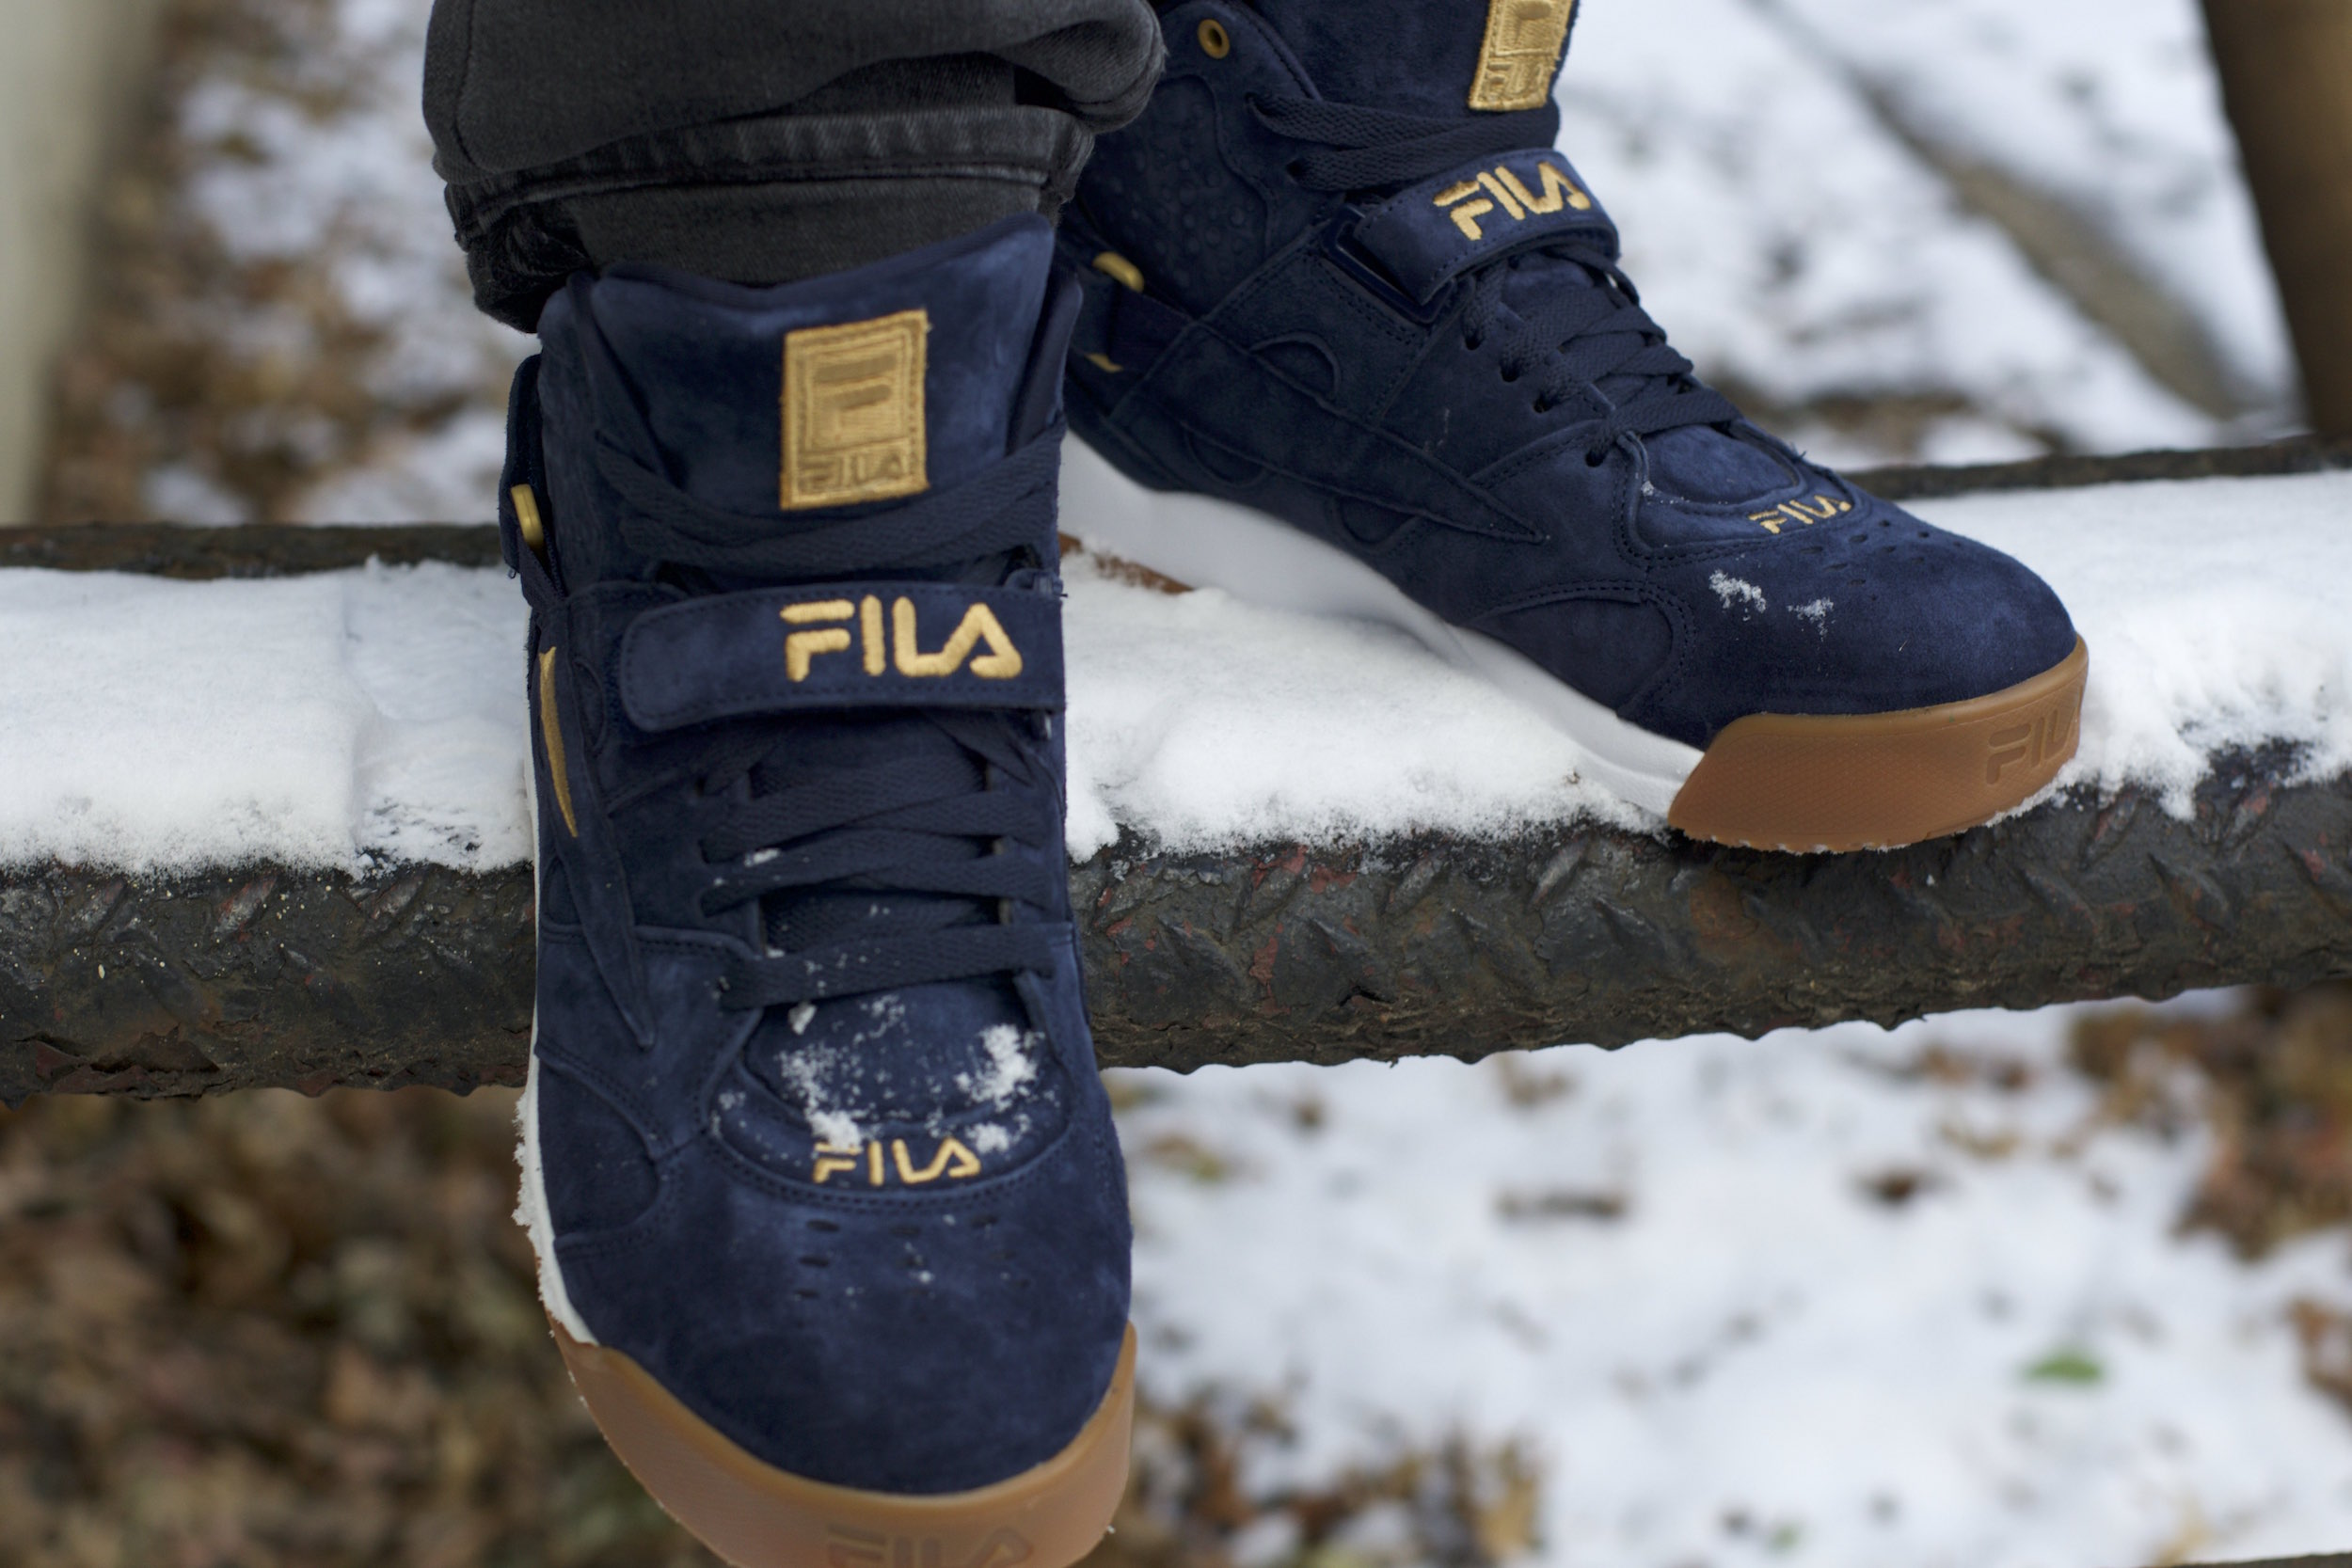 FILA Spoiler Royal Beginnings 10